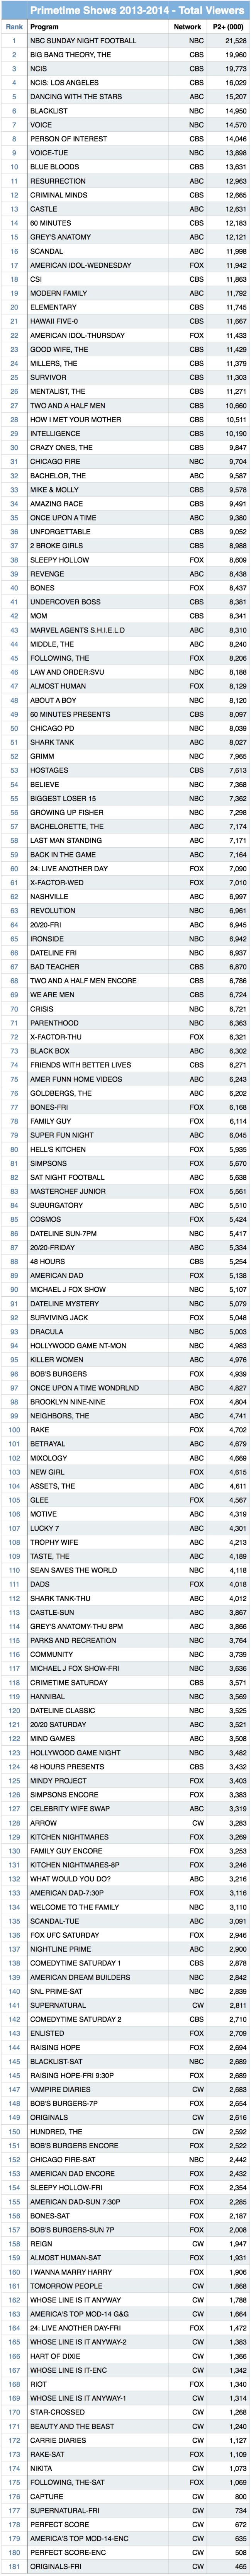 Primetime ratings total audience 2013-2014